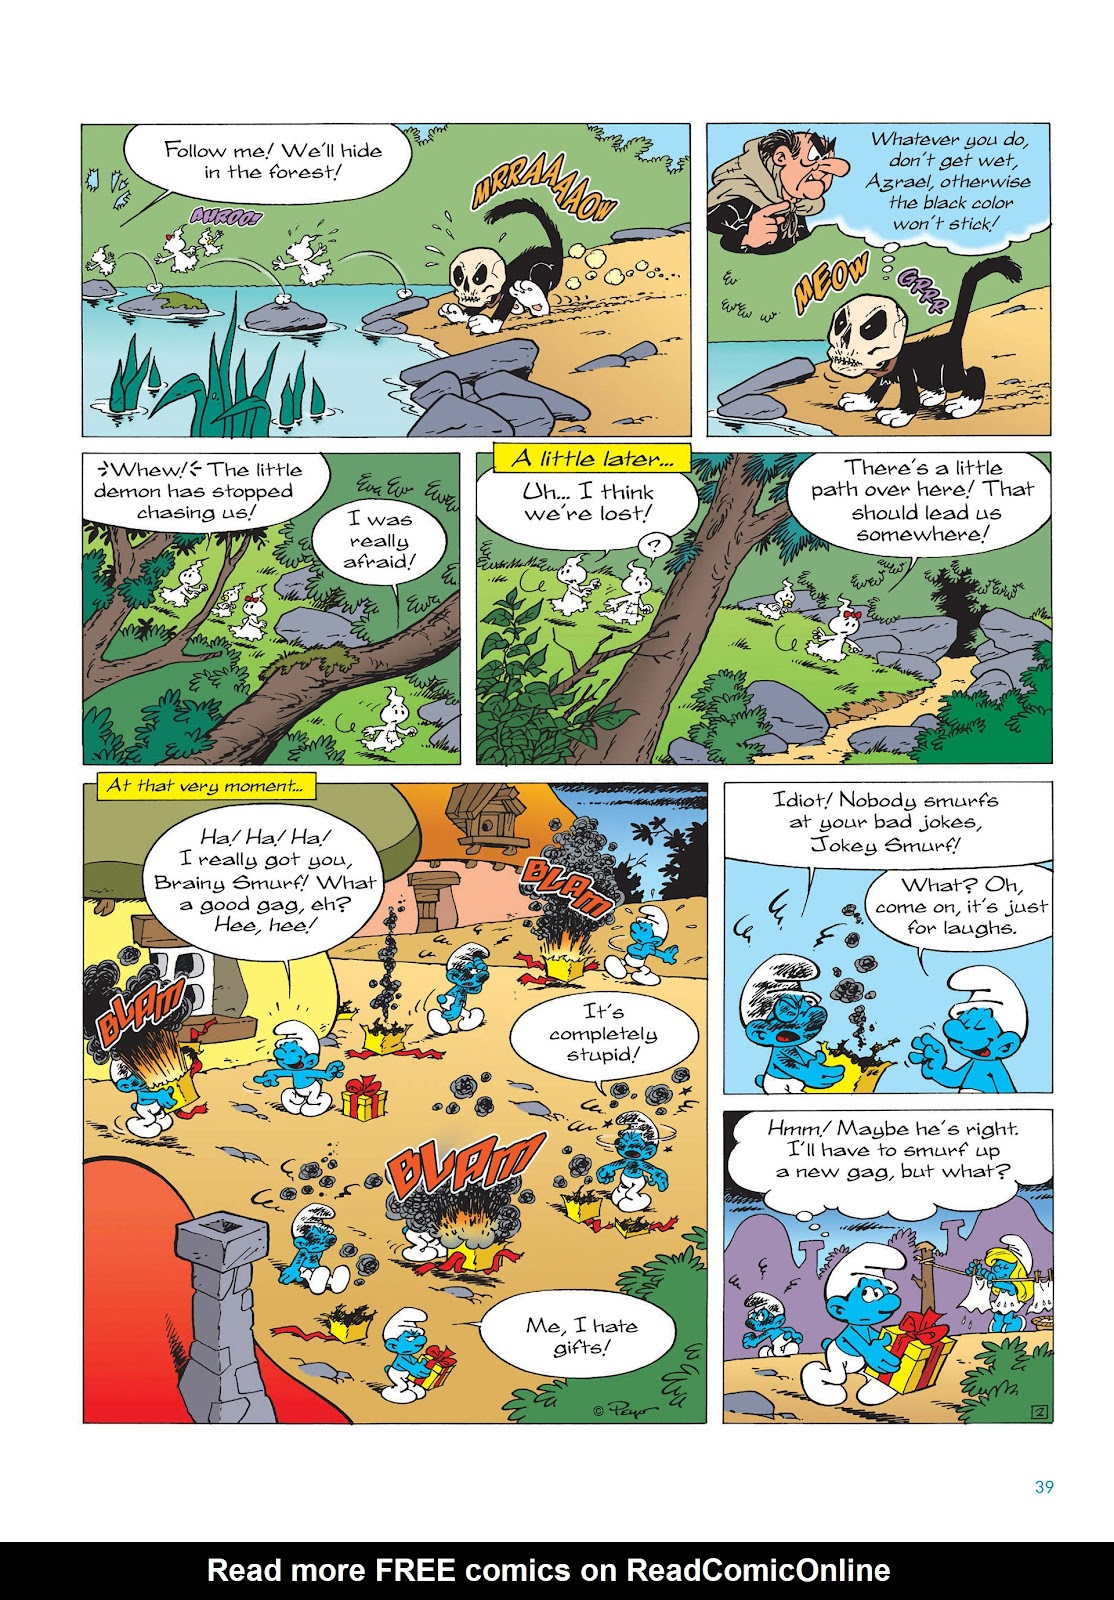 Read online The Smurfs comic -  Issue #15 - 40